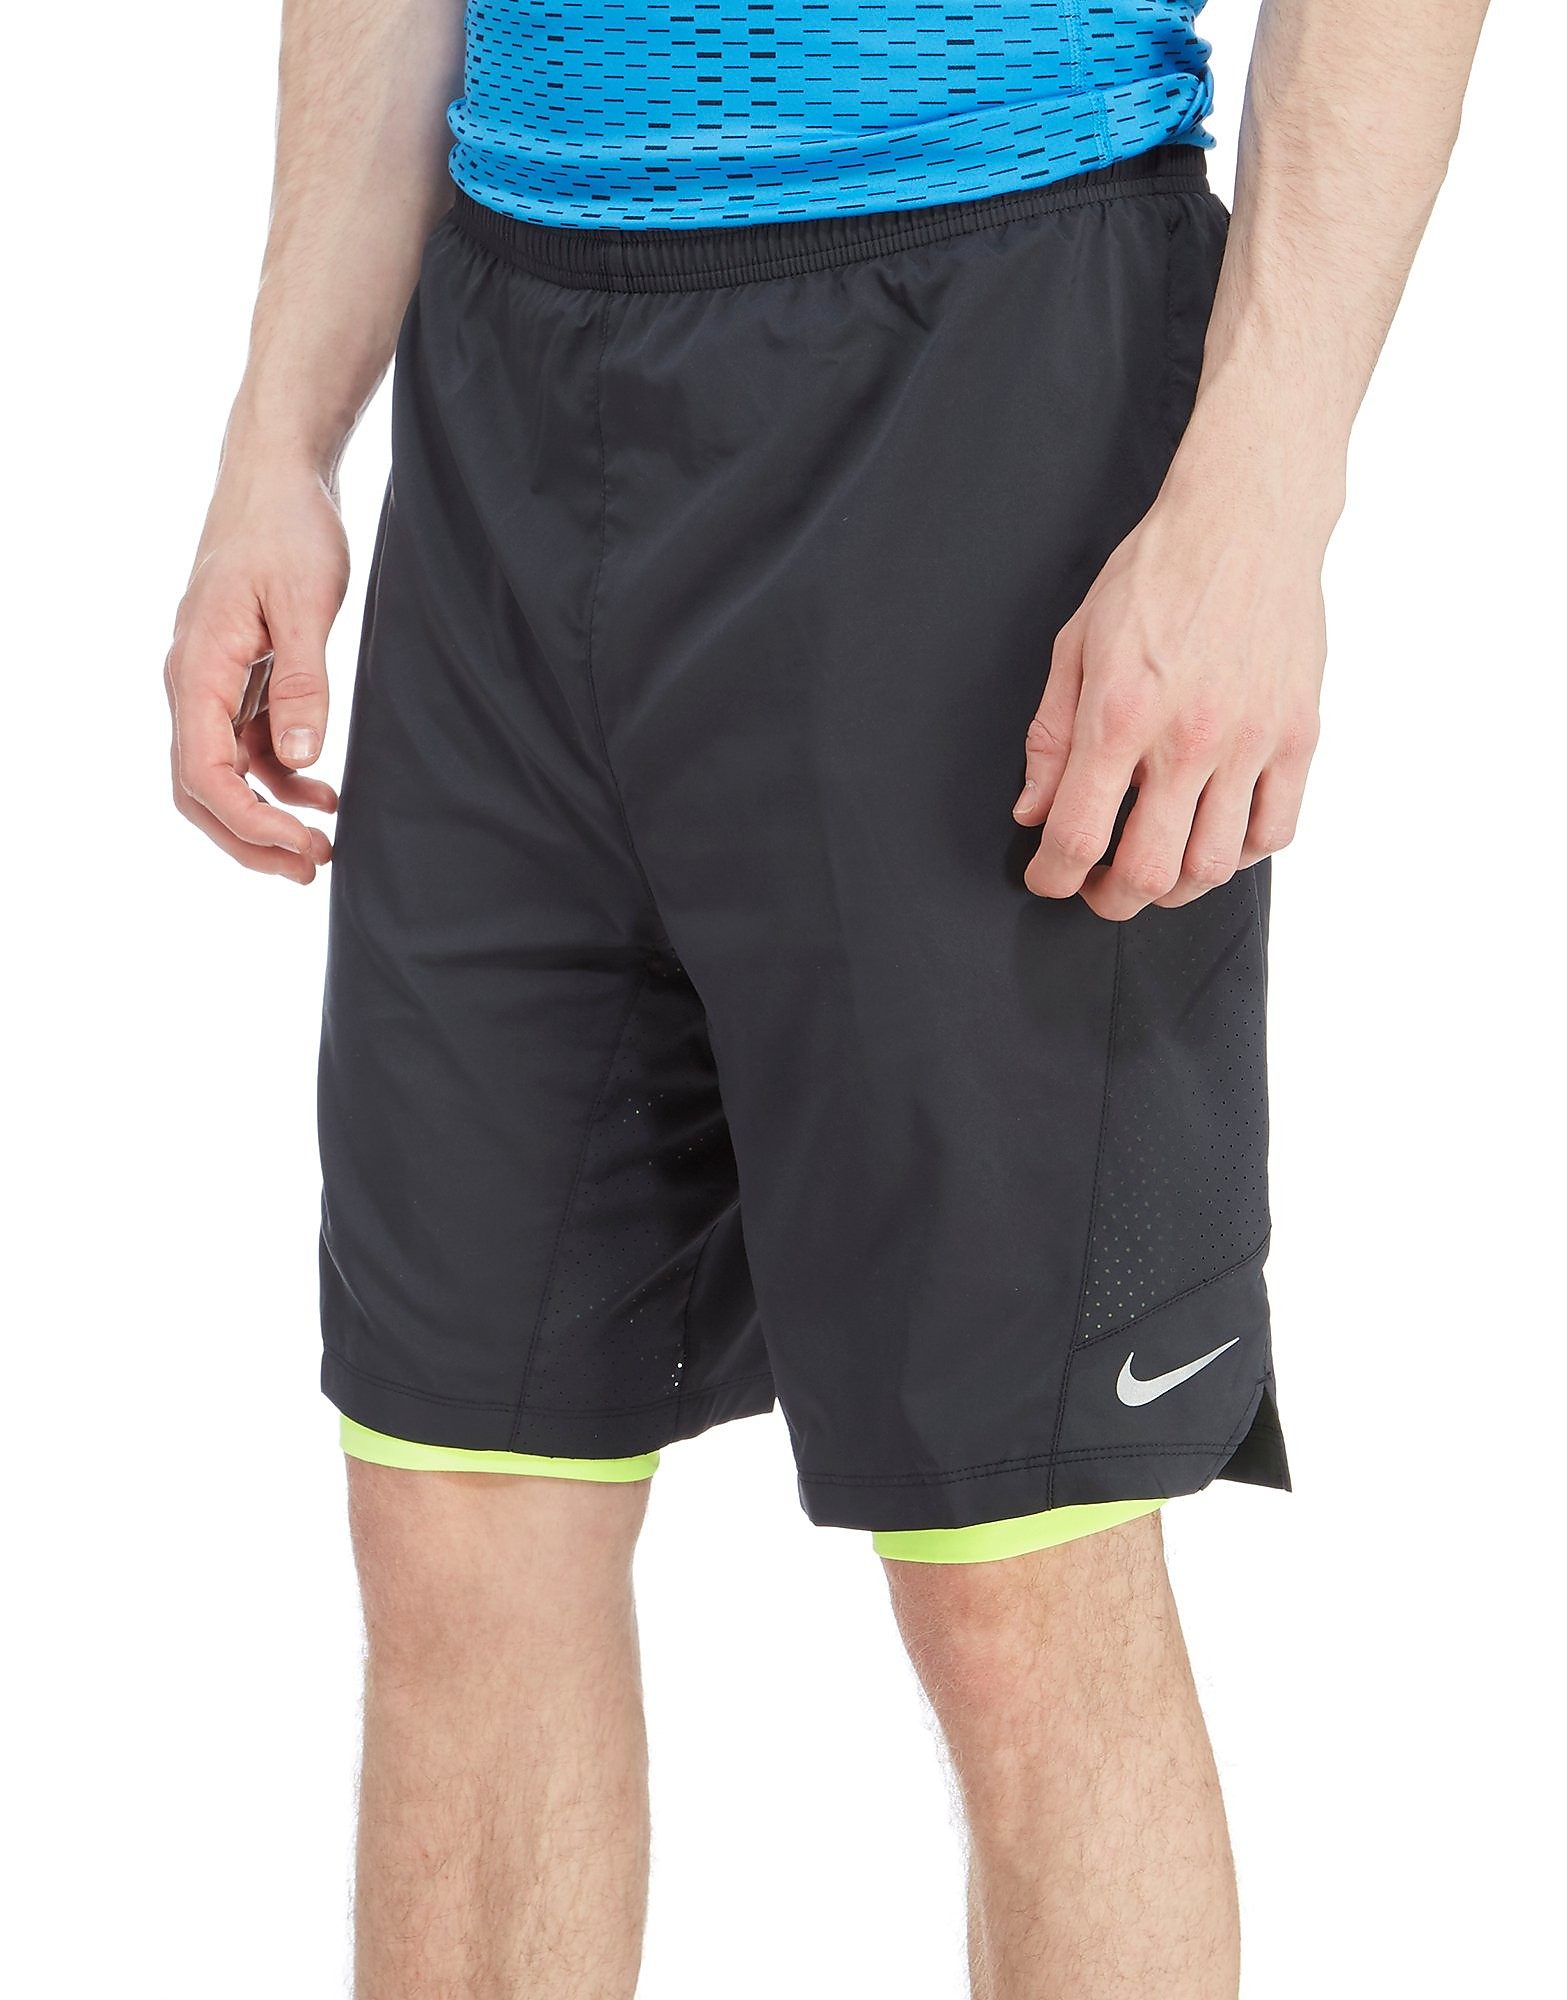 Nike Pursuit 9 Inch 2 In 1 Shorts